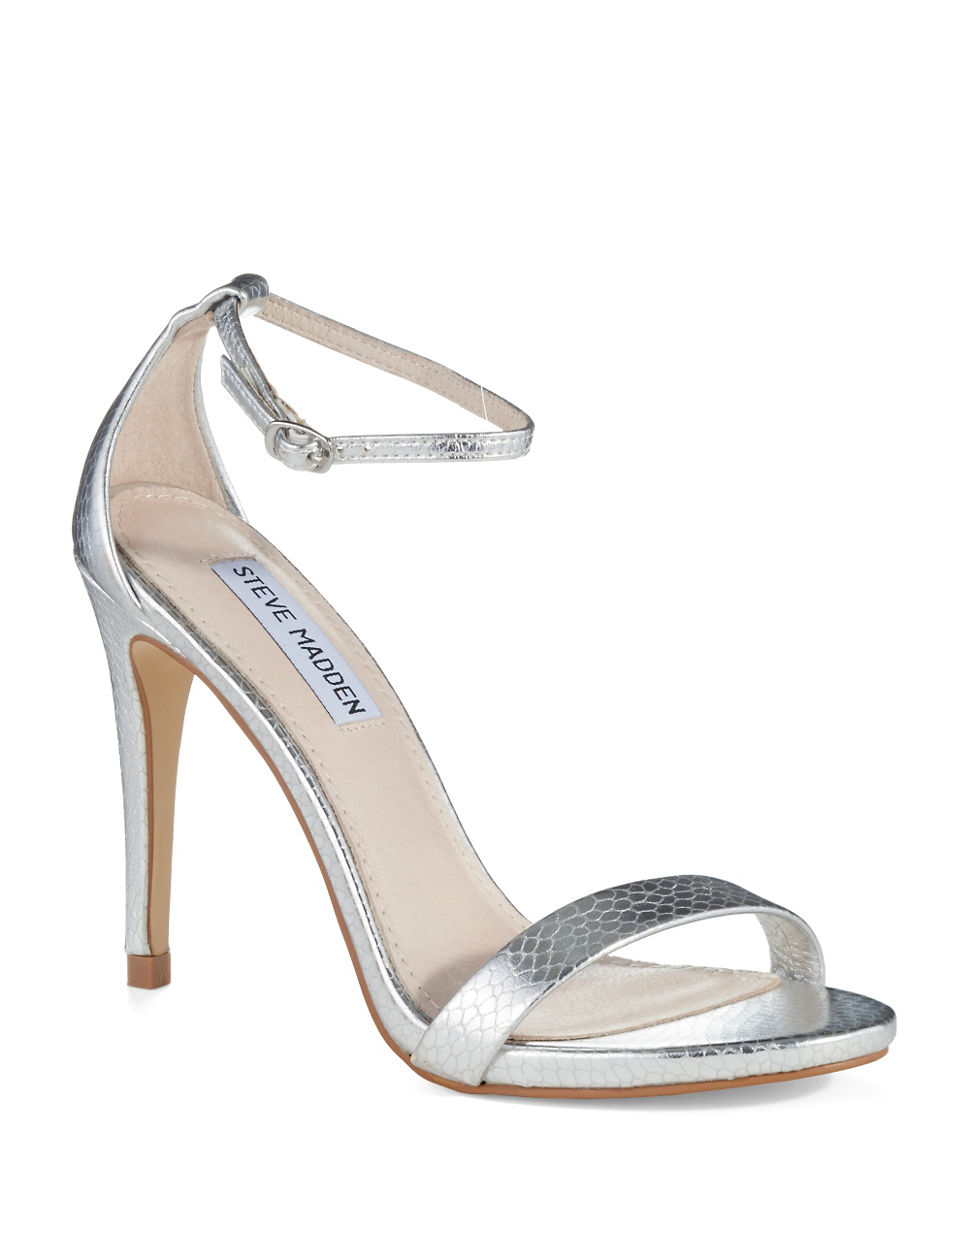 Find silver strappy heels at Macy's Macy's Presents: The Edit - A curated mix of fashion and inspiration Check It Out Free Shipping with $49 purchase + Free Store Pickup.